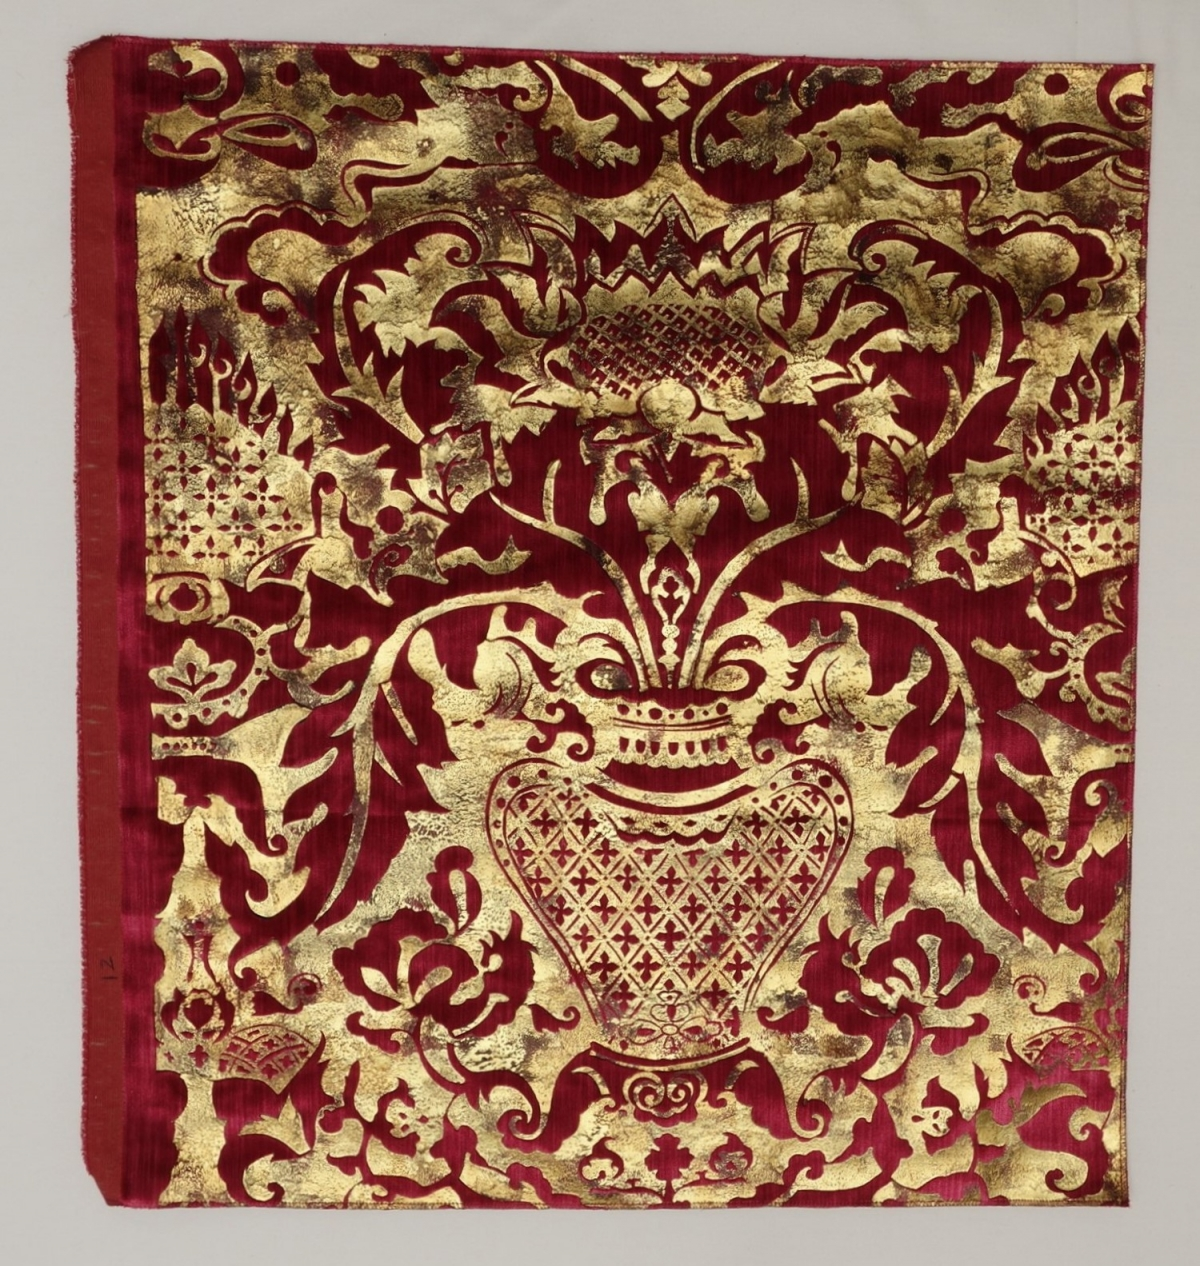 Red silk velvet with a screen printed design based upon Renaissance motifs (France, 2018).